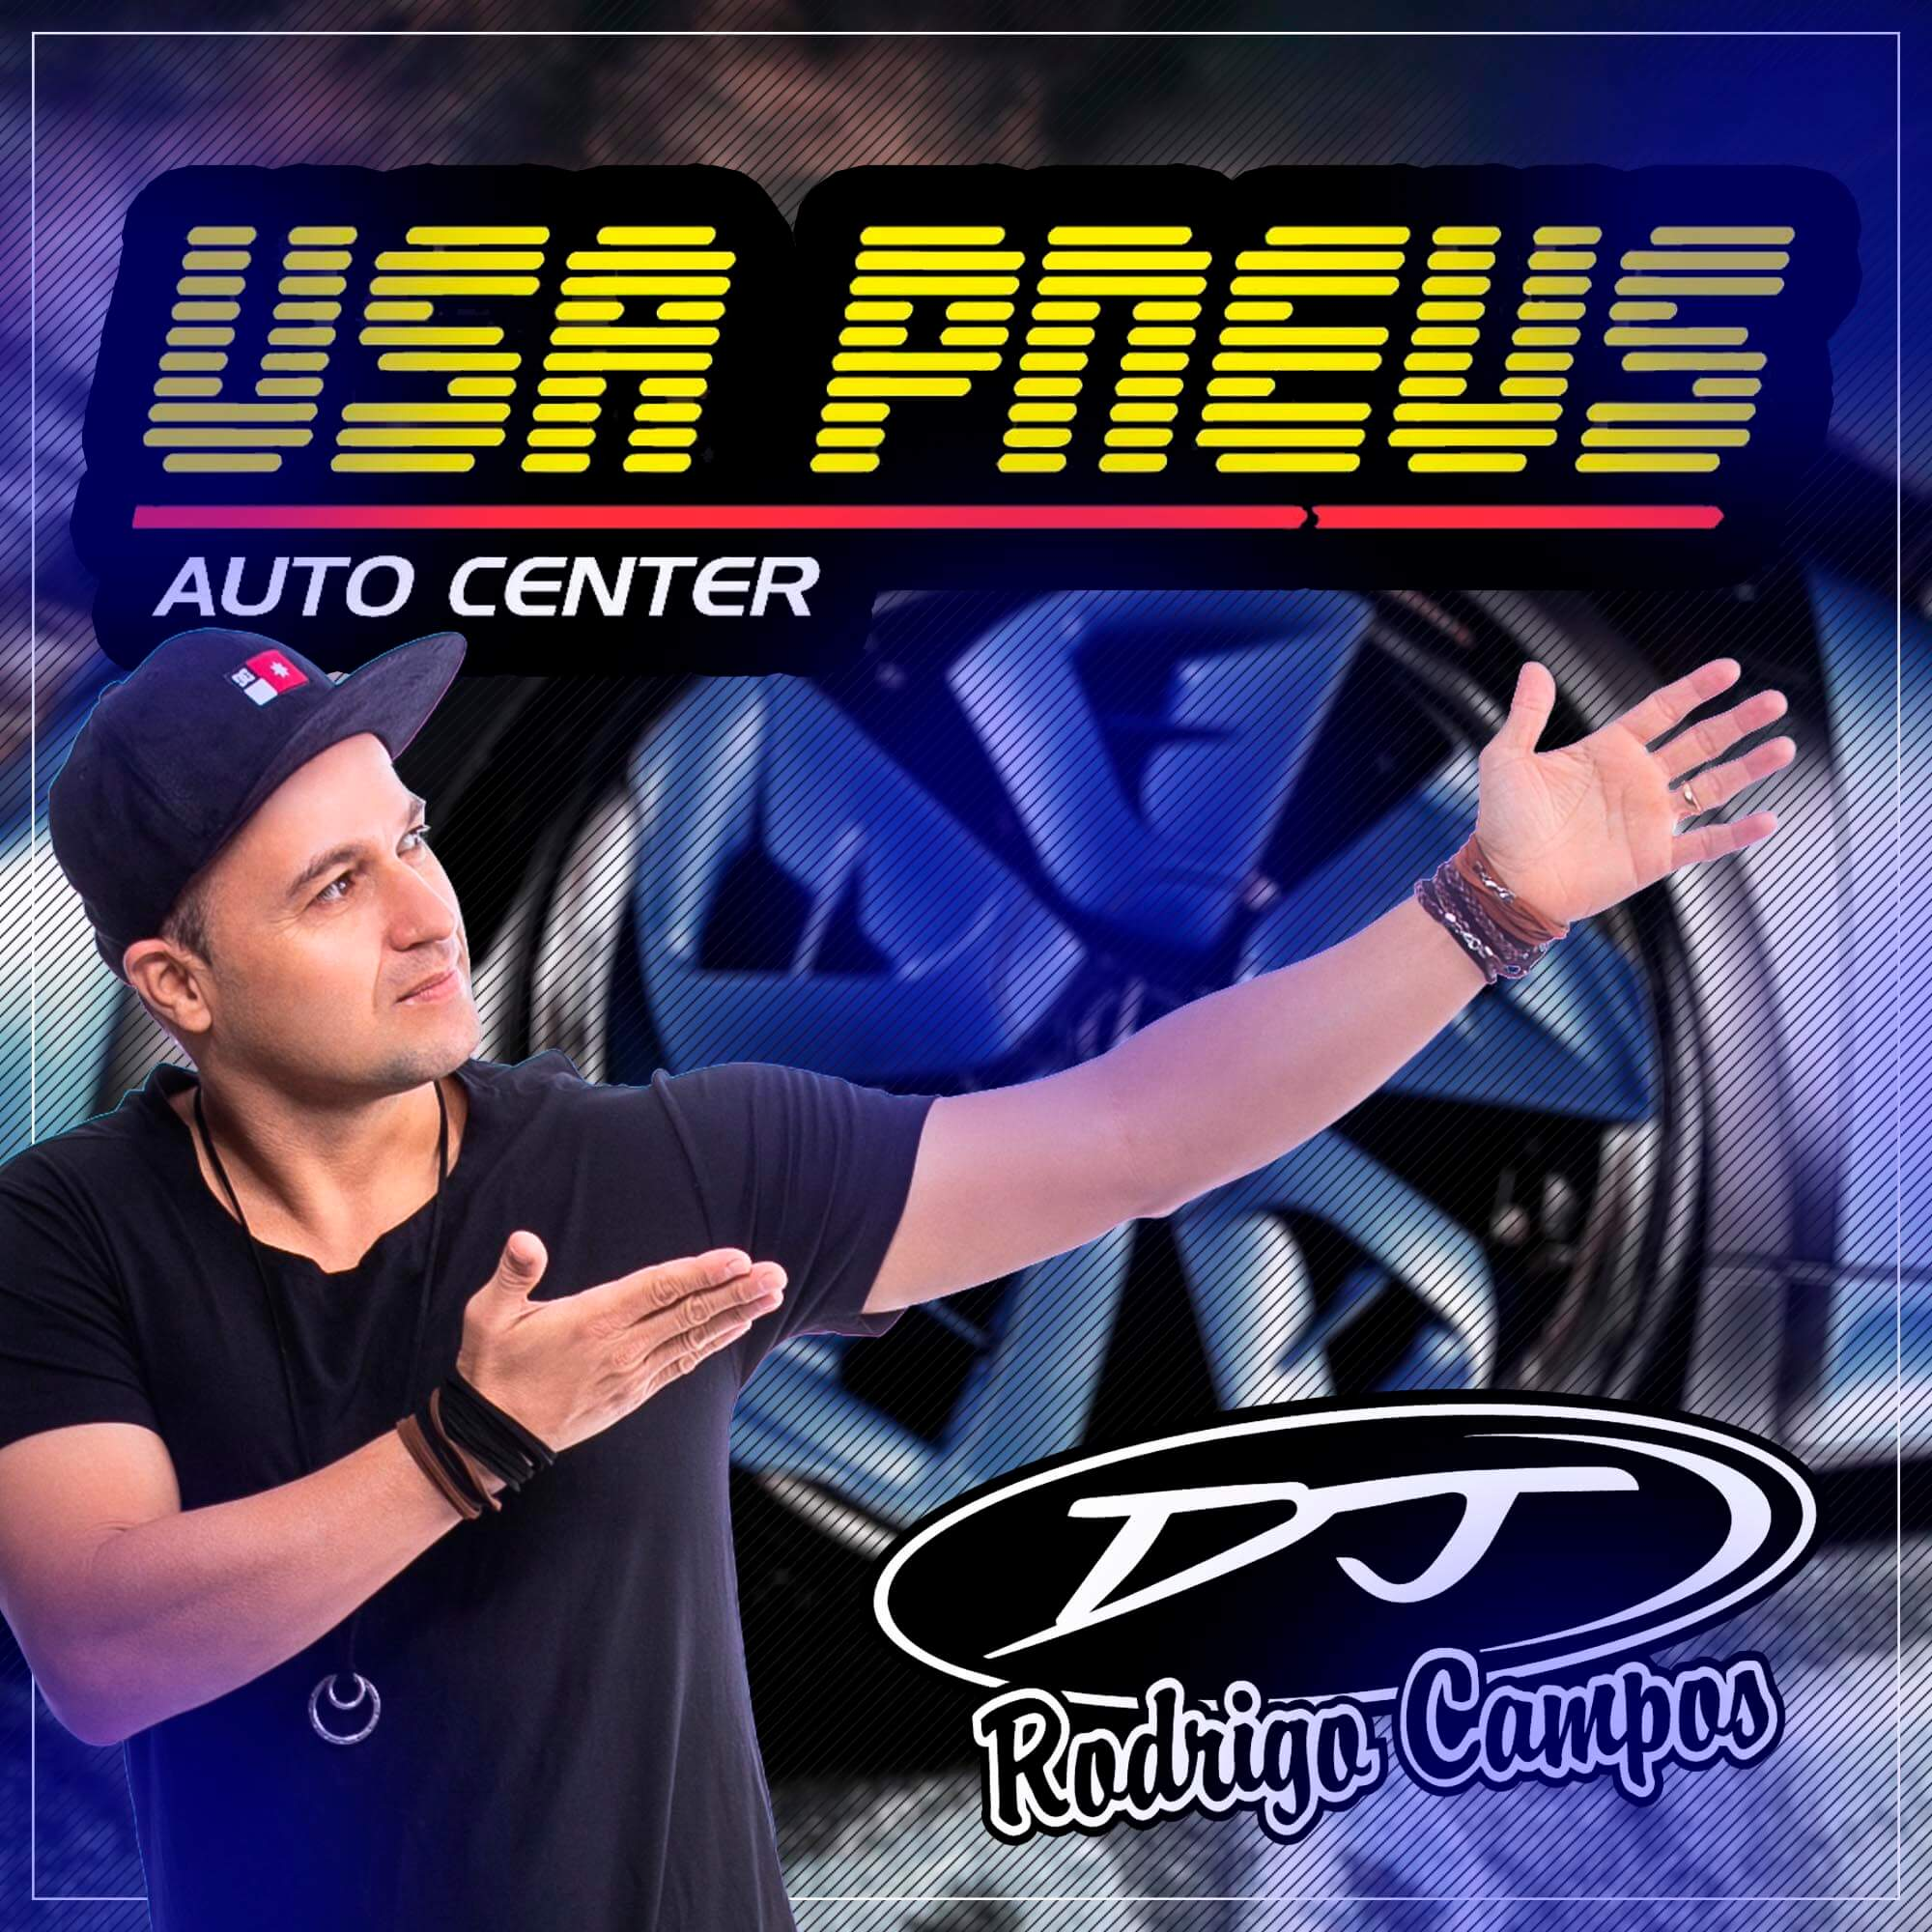 PARTE 01 – Usa Pneus Auto Center Ijui RS — SERTANEJO E BANDAS DO SUL